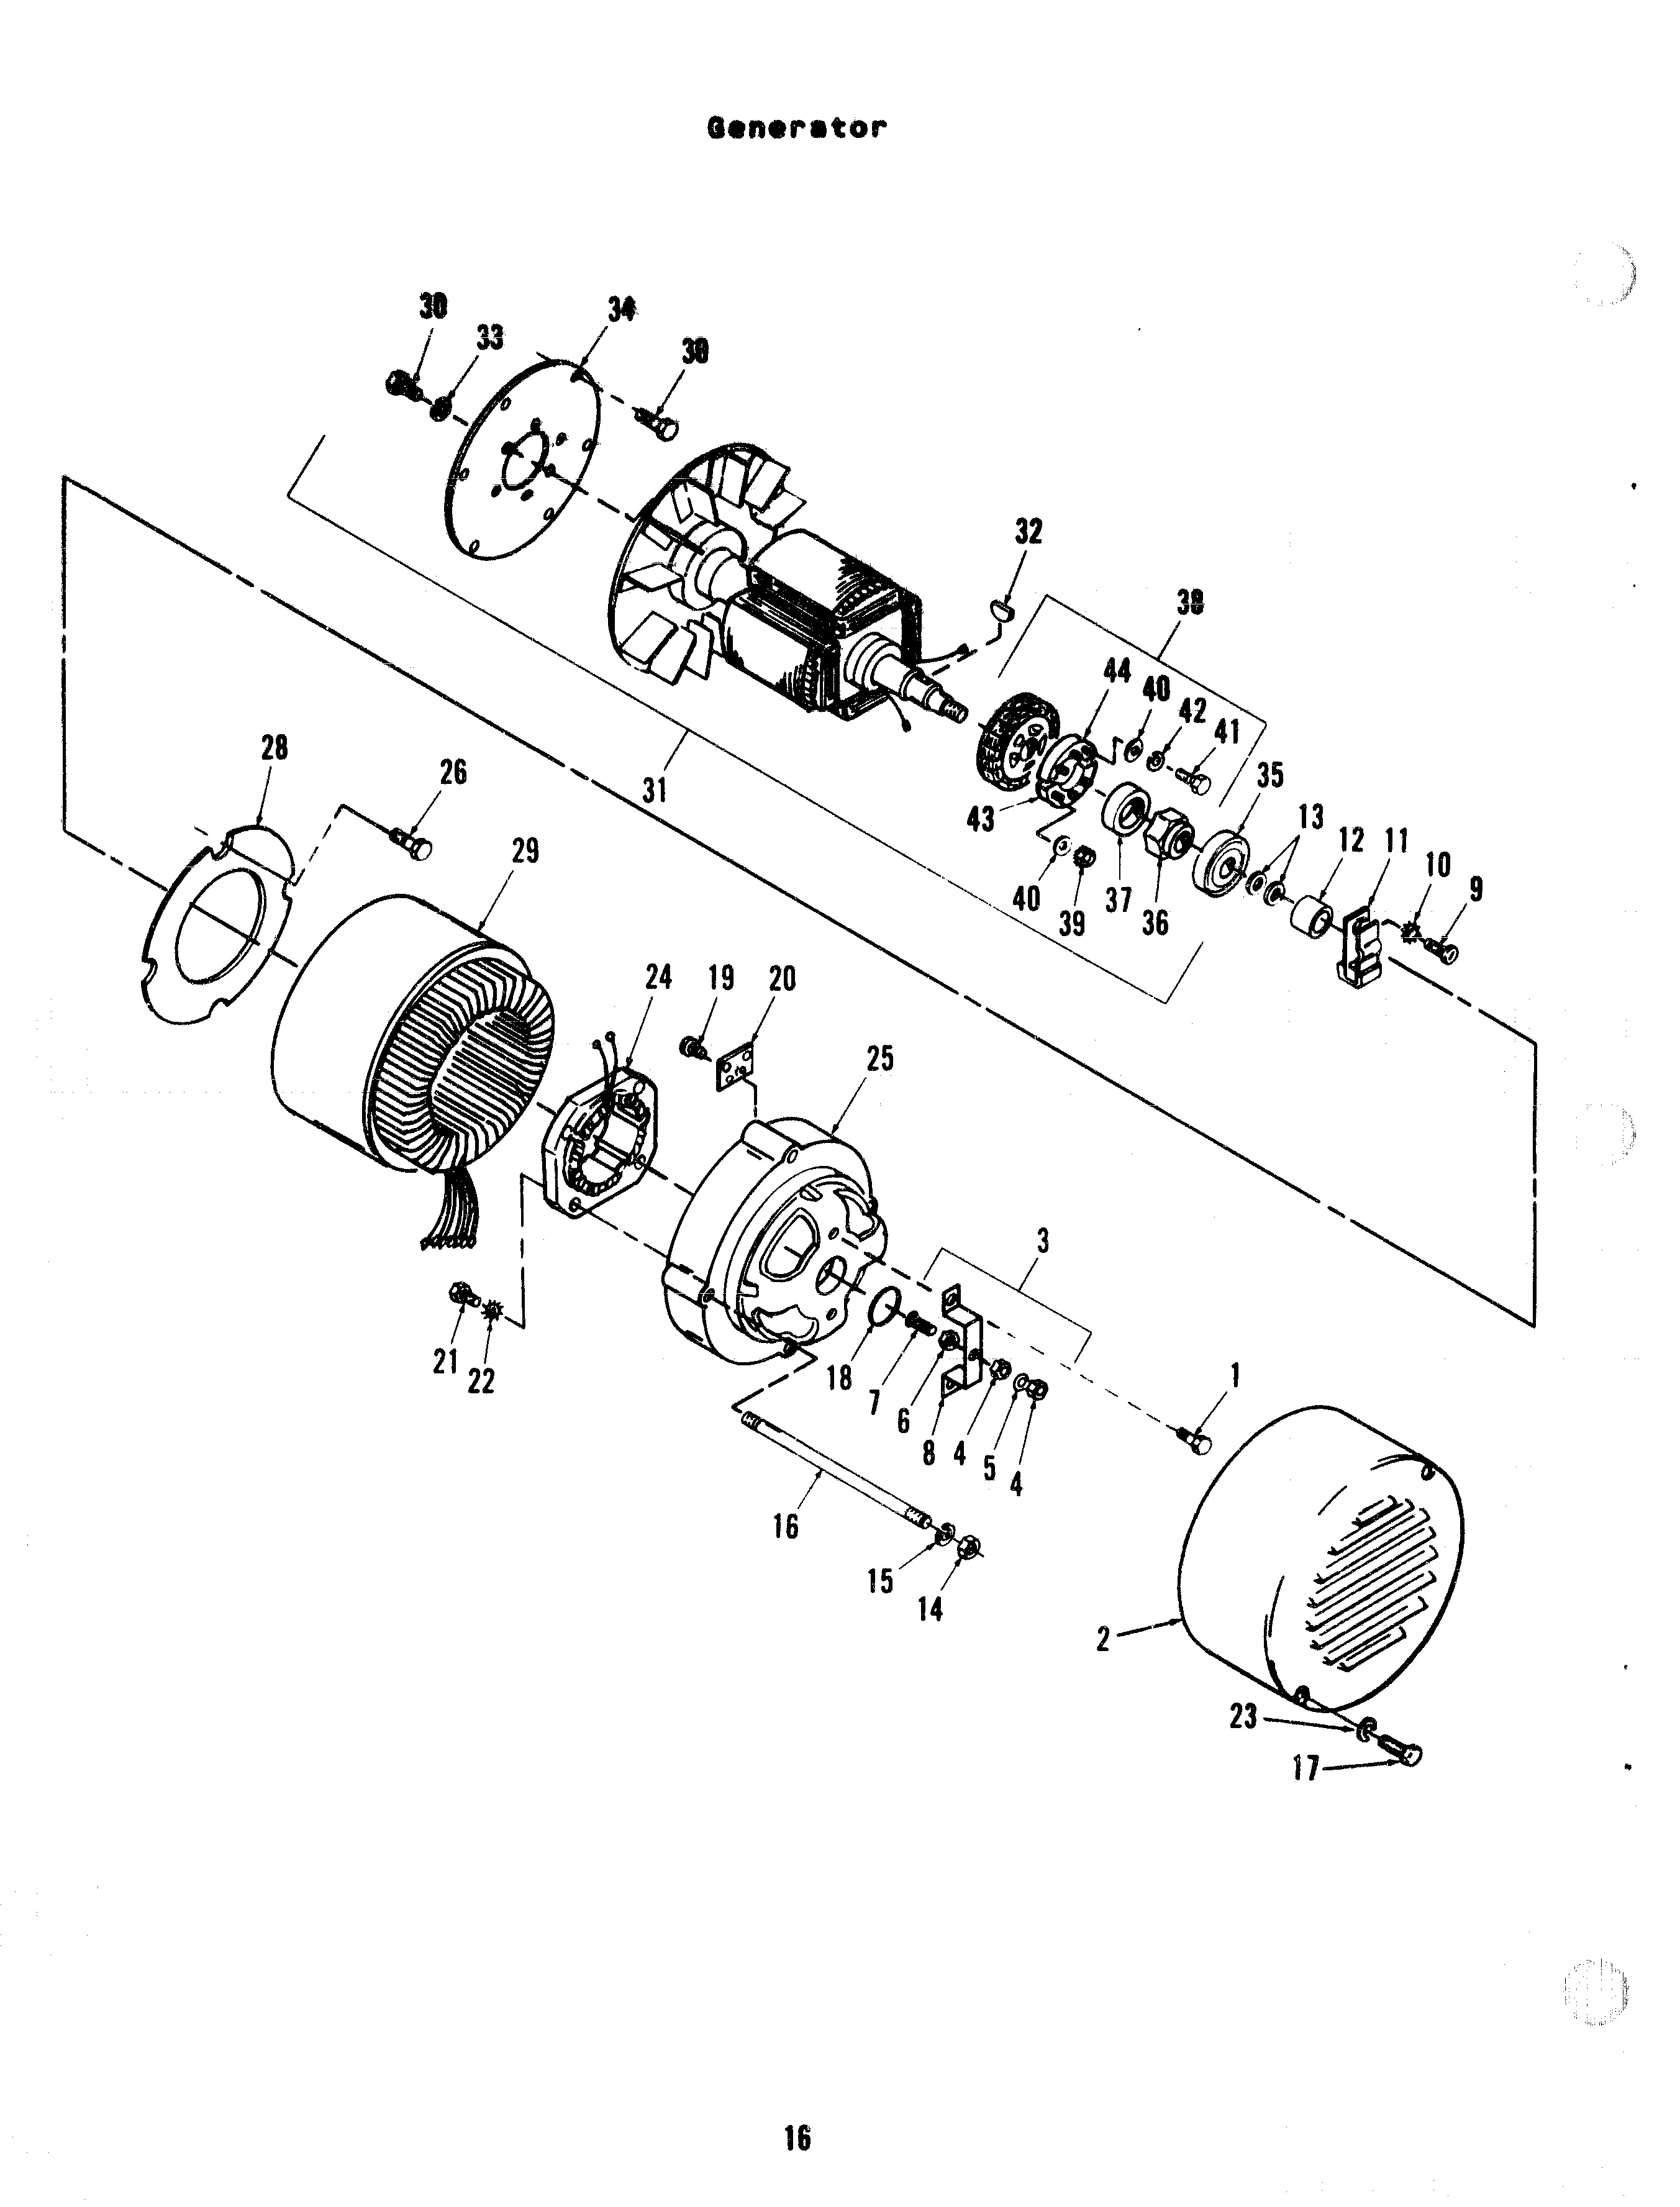 Onan Parts Manual for ES Mobile Genset: 928-0227: Page 16